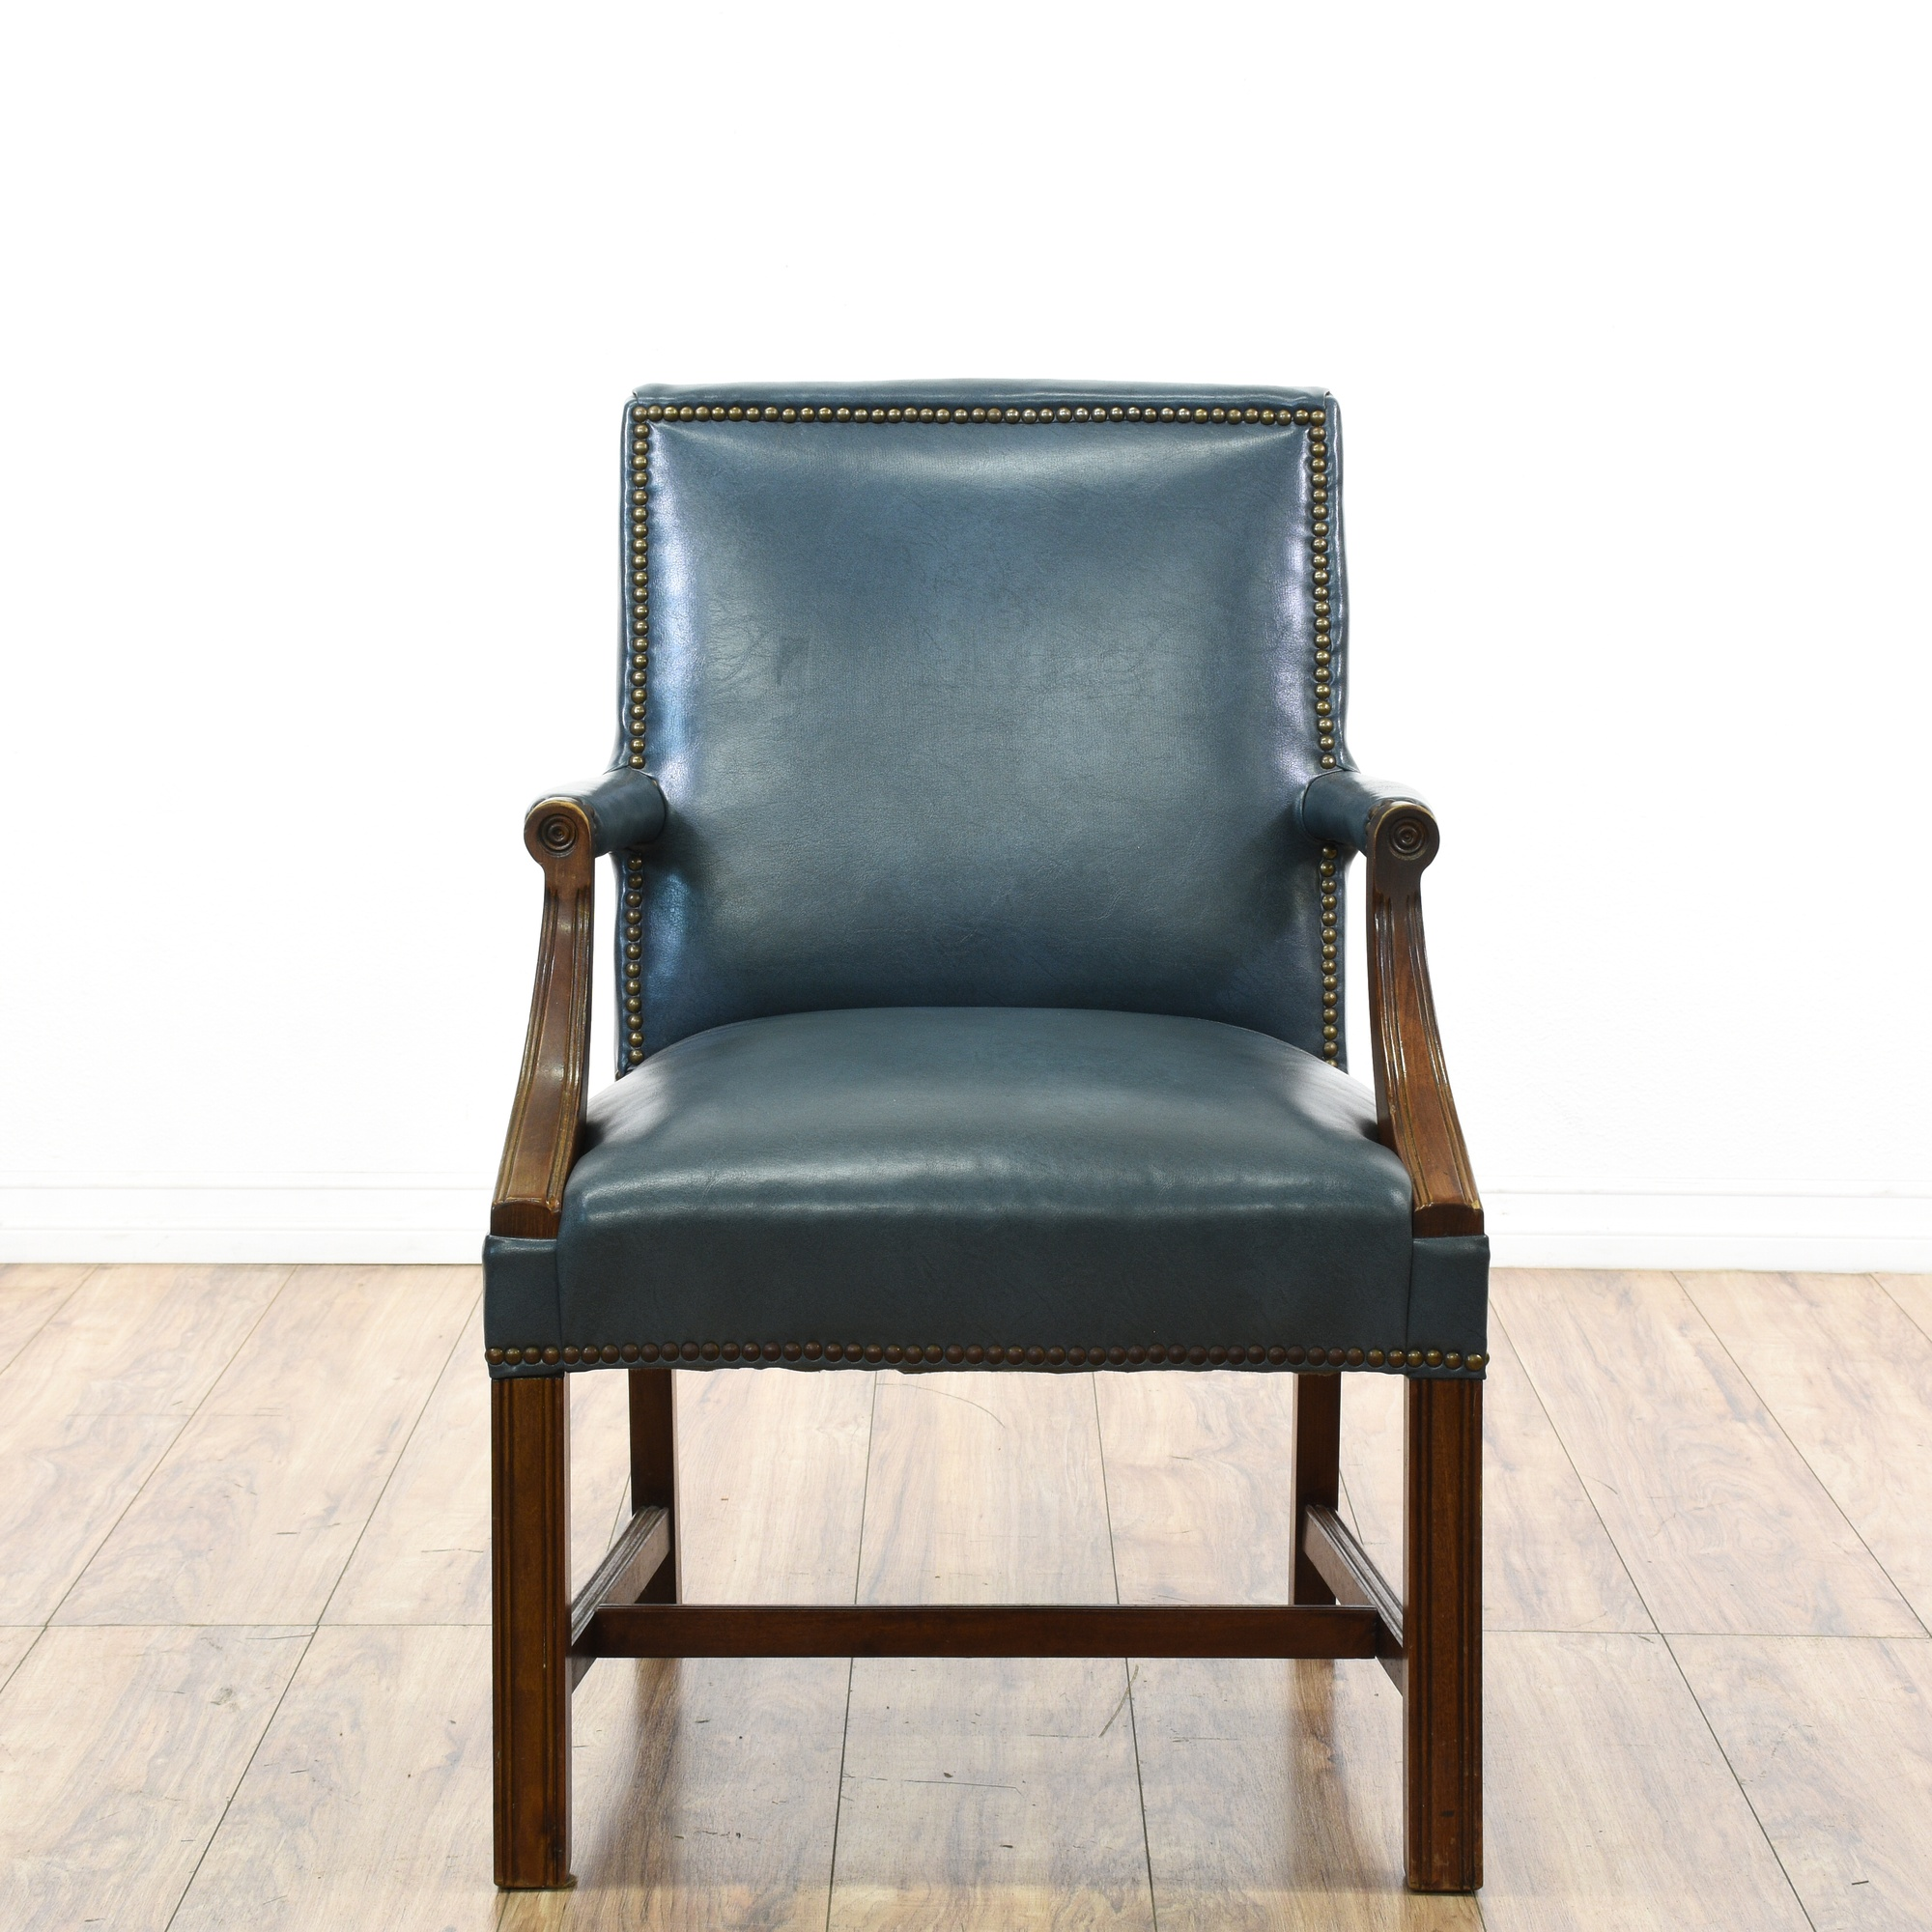 Teal Blue Vinyl Wood Carved Executive Chair Loveseat